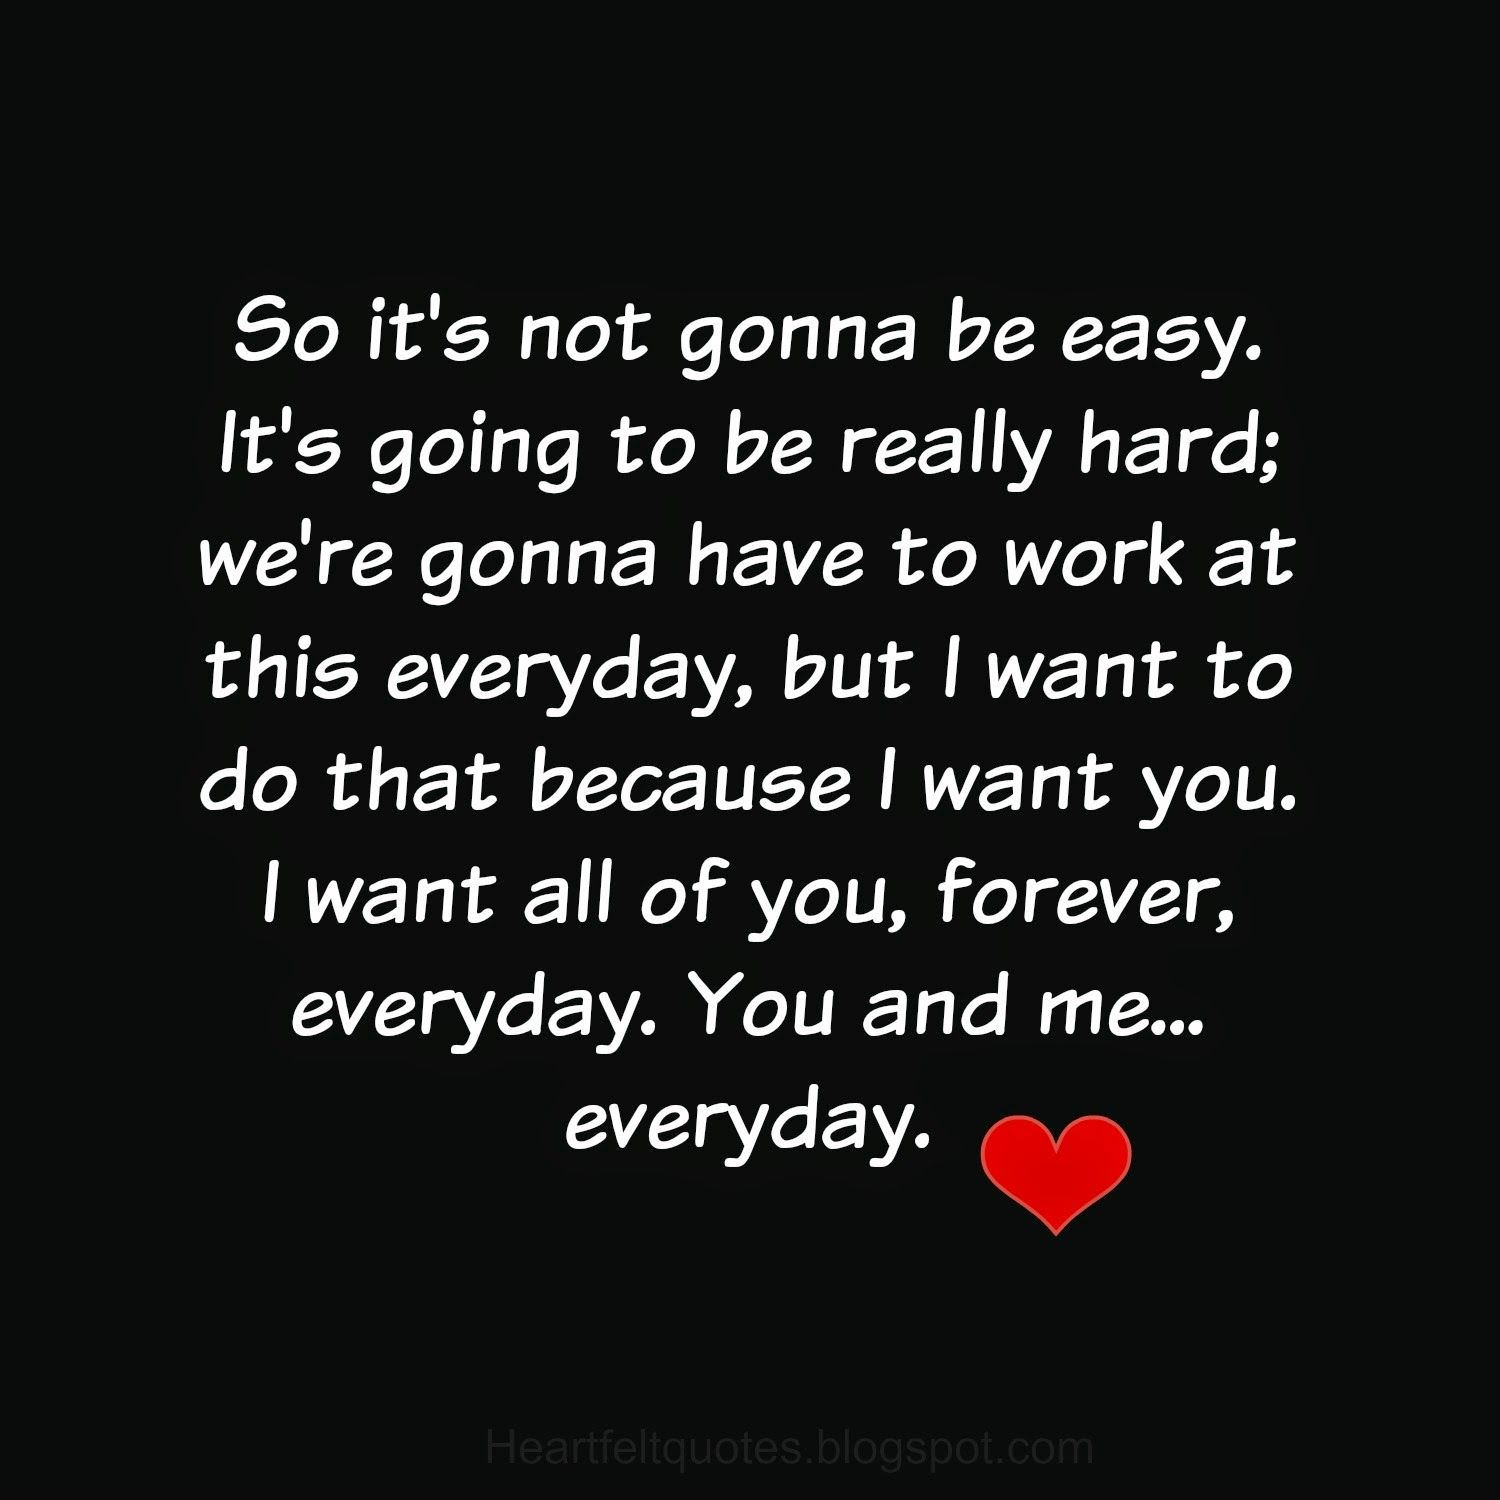 I Want All Of You Forever Everyday You And Me Everyday Love You Forever Quotes I Love You Forever Heartfelt Quotes